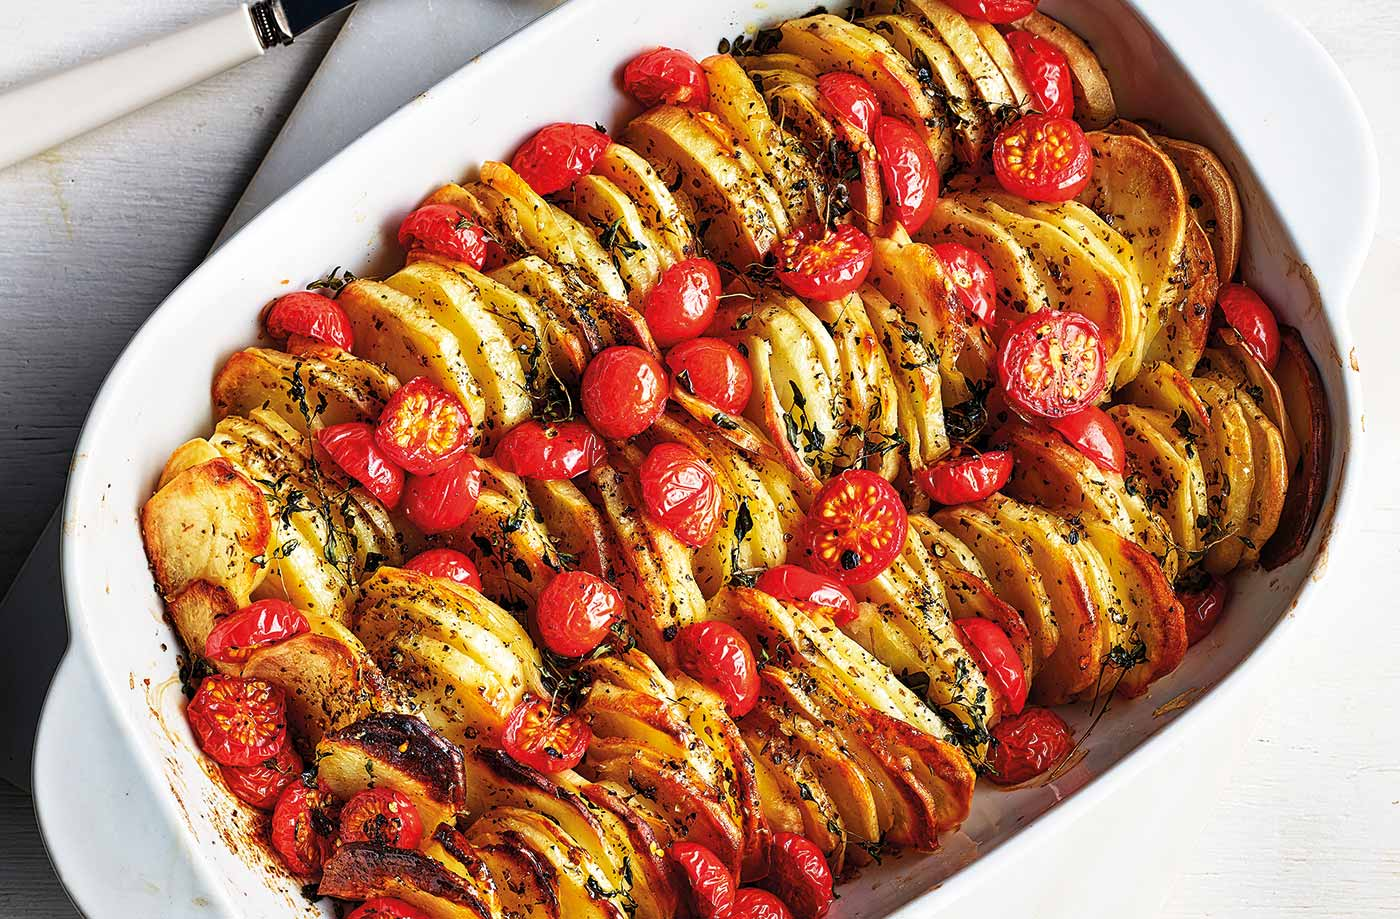 Tomato and oregano potato bake recipe